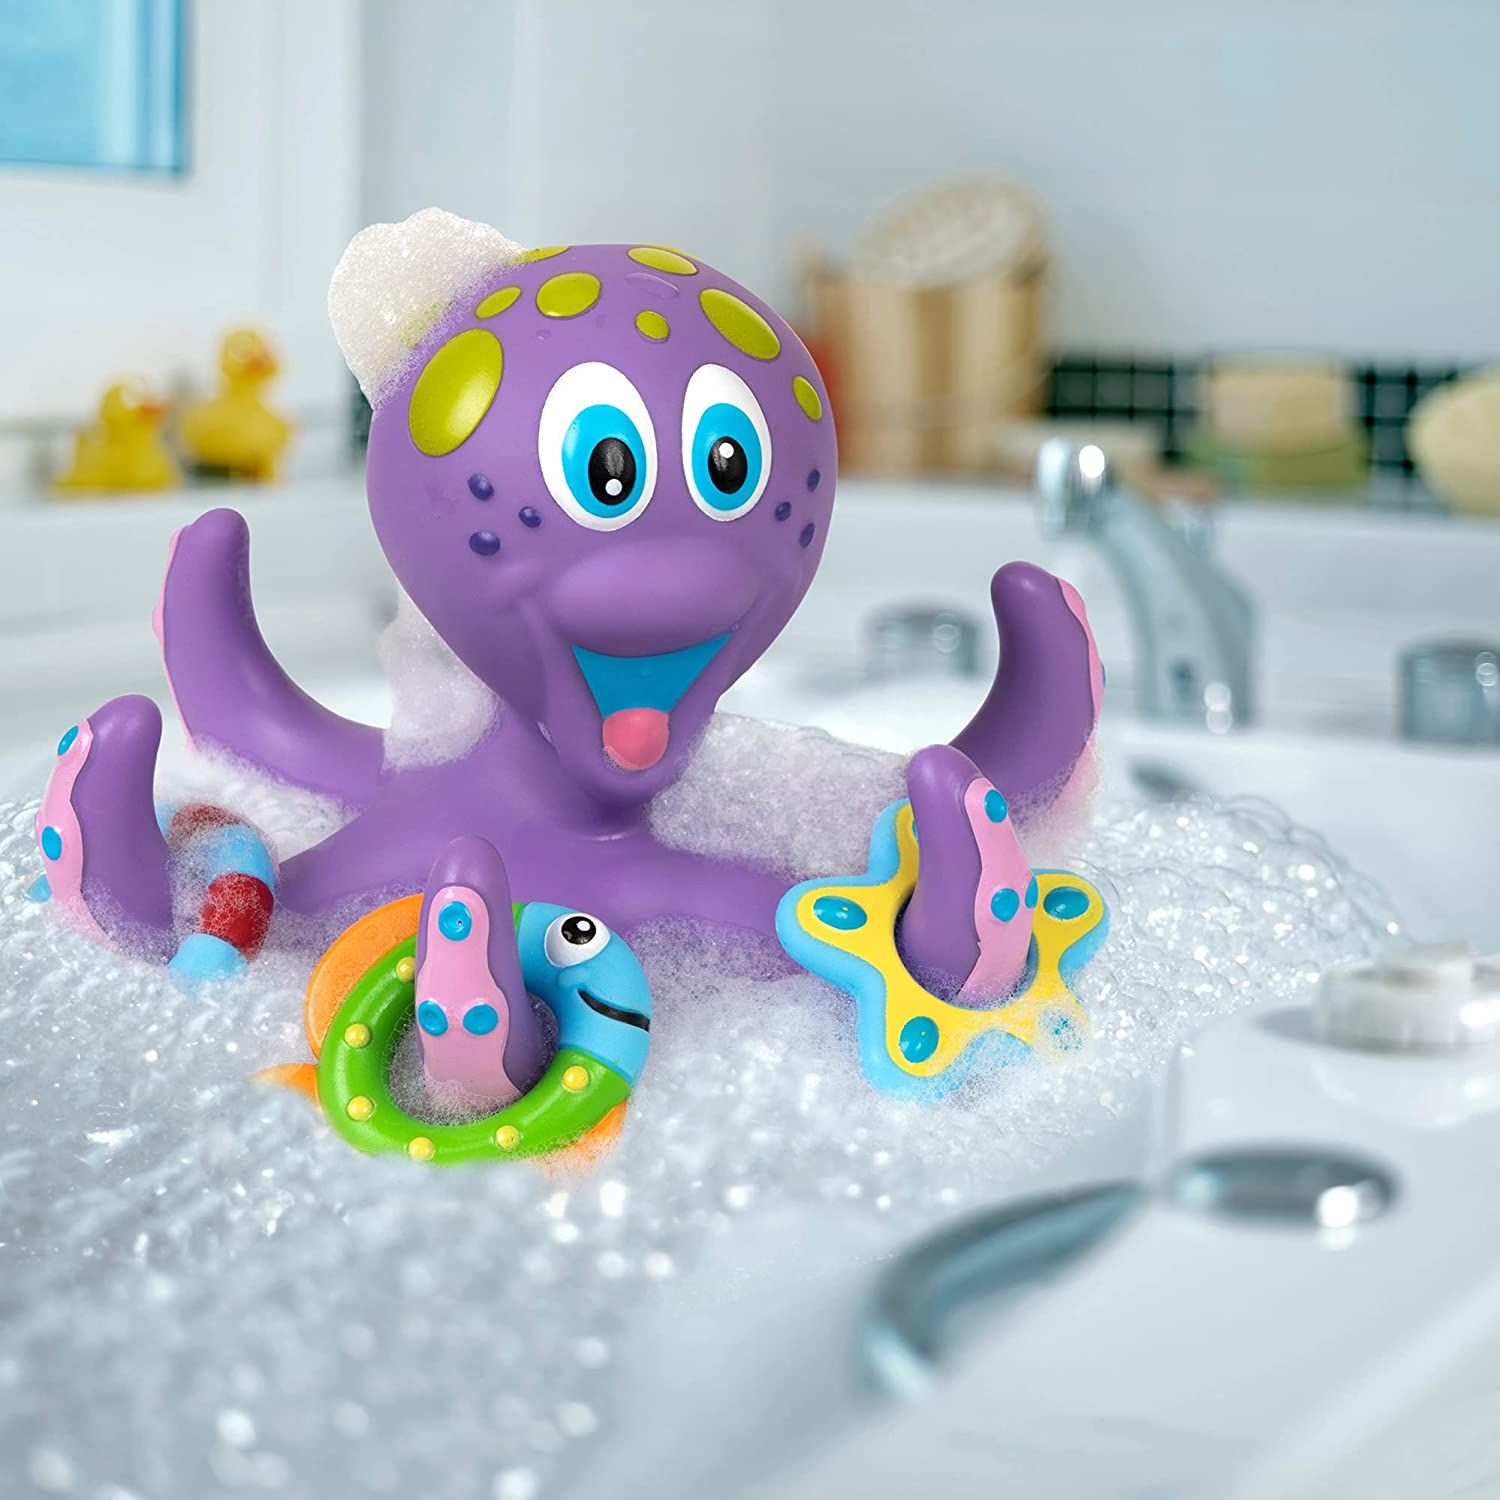 Nuby Floating Purple Octopus with Rings Fort Worth Mall Bat 3 Arlington Mall Interactive Hoopla